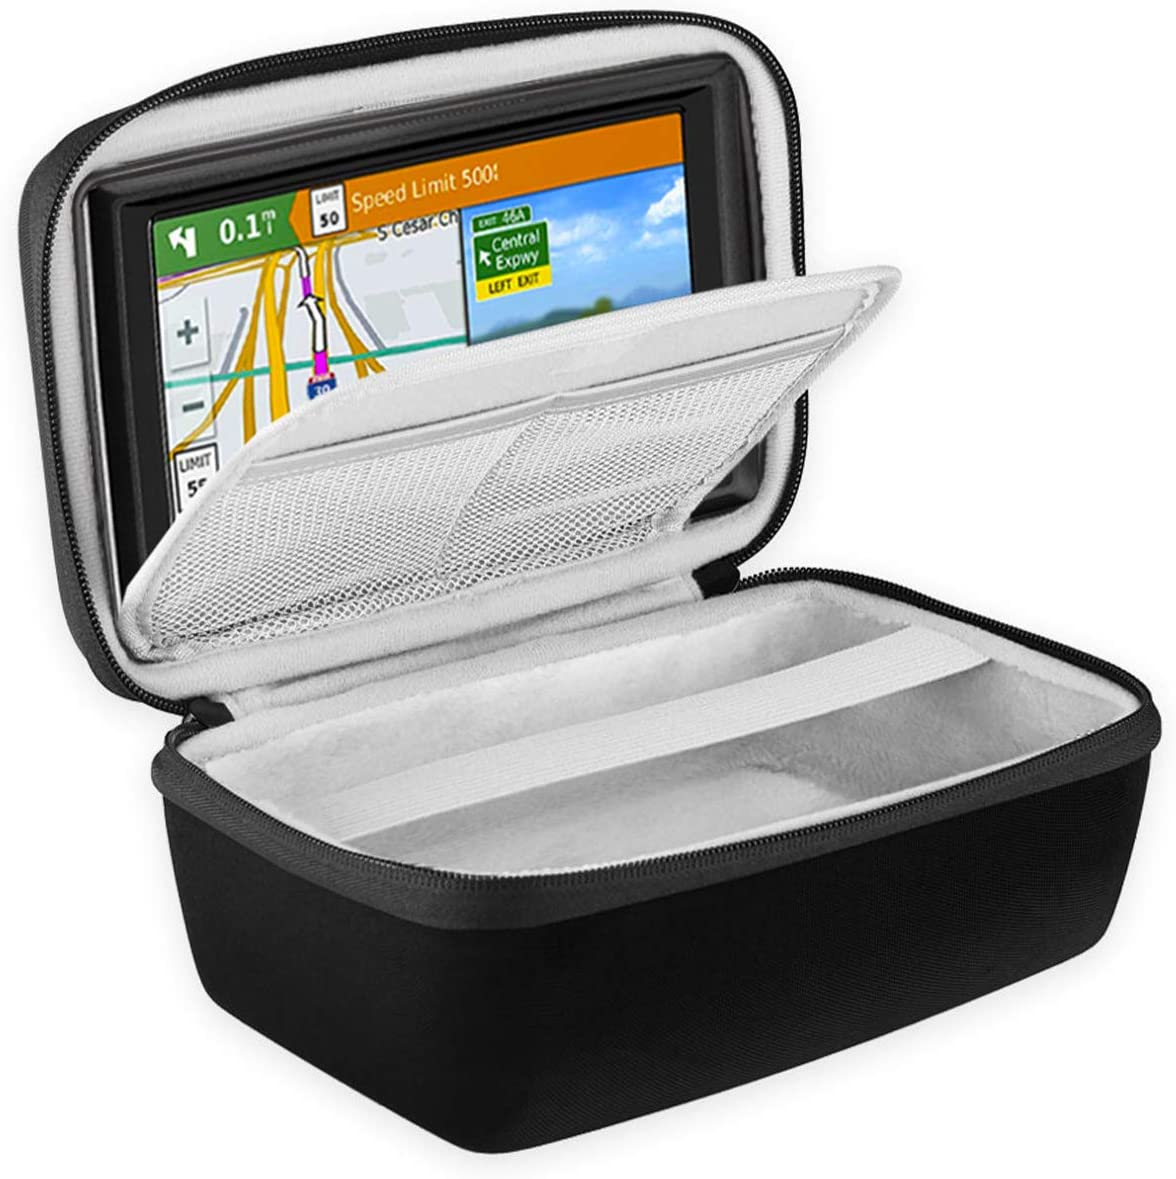 BOVKE Hard Carrying Case for 5-Inch GPS Navigator Fit Garmin Nuvi 55LM 2557LMT 52LM 42LM tomtom Mio 4.3-5